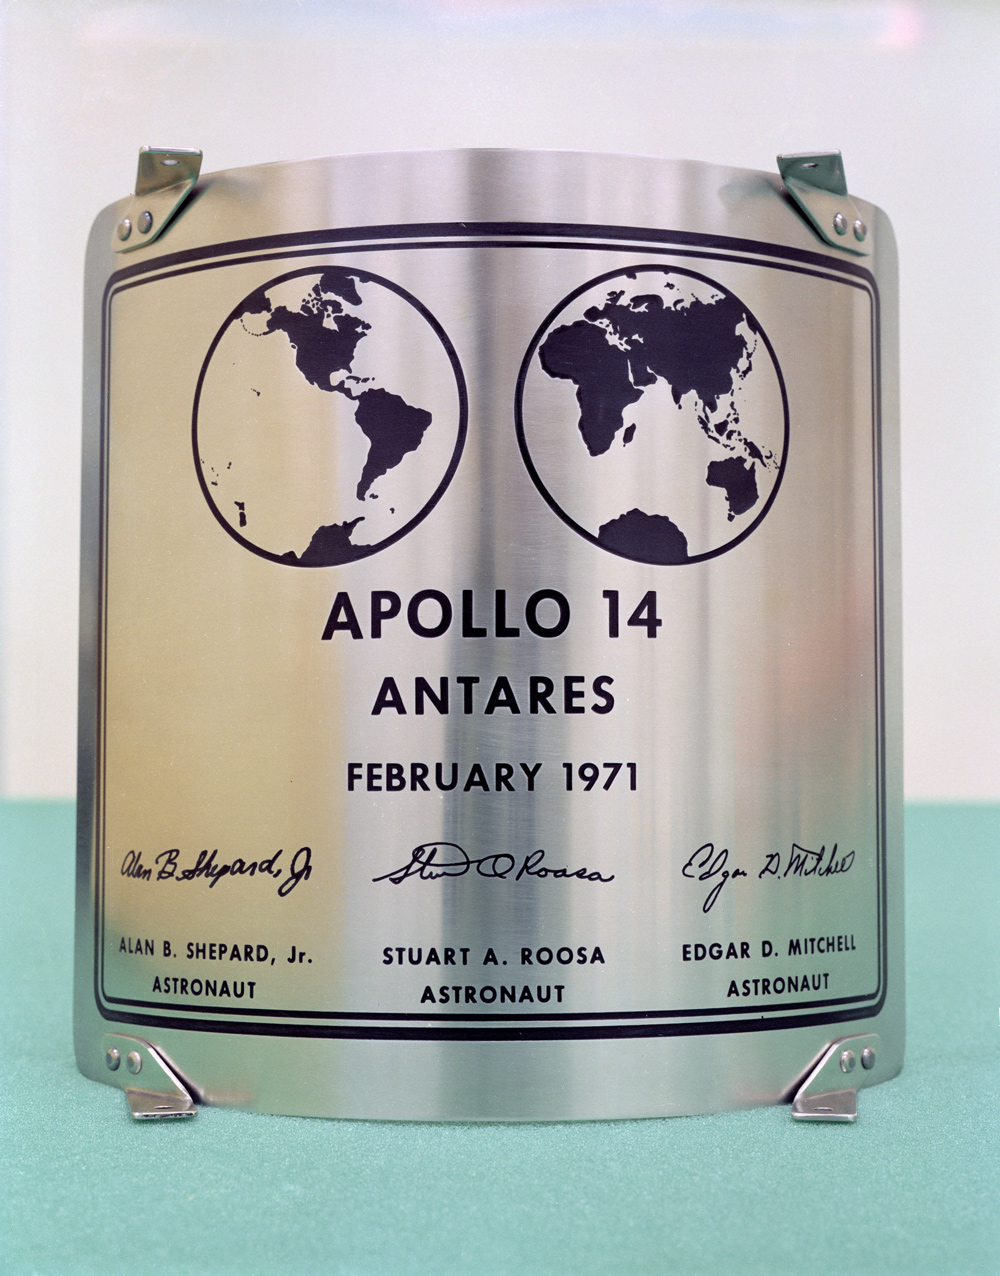 Apollo 14 plaque signed by three astronauts